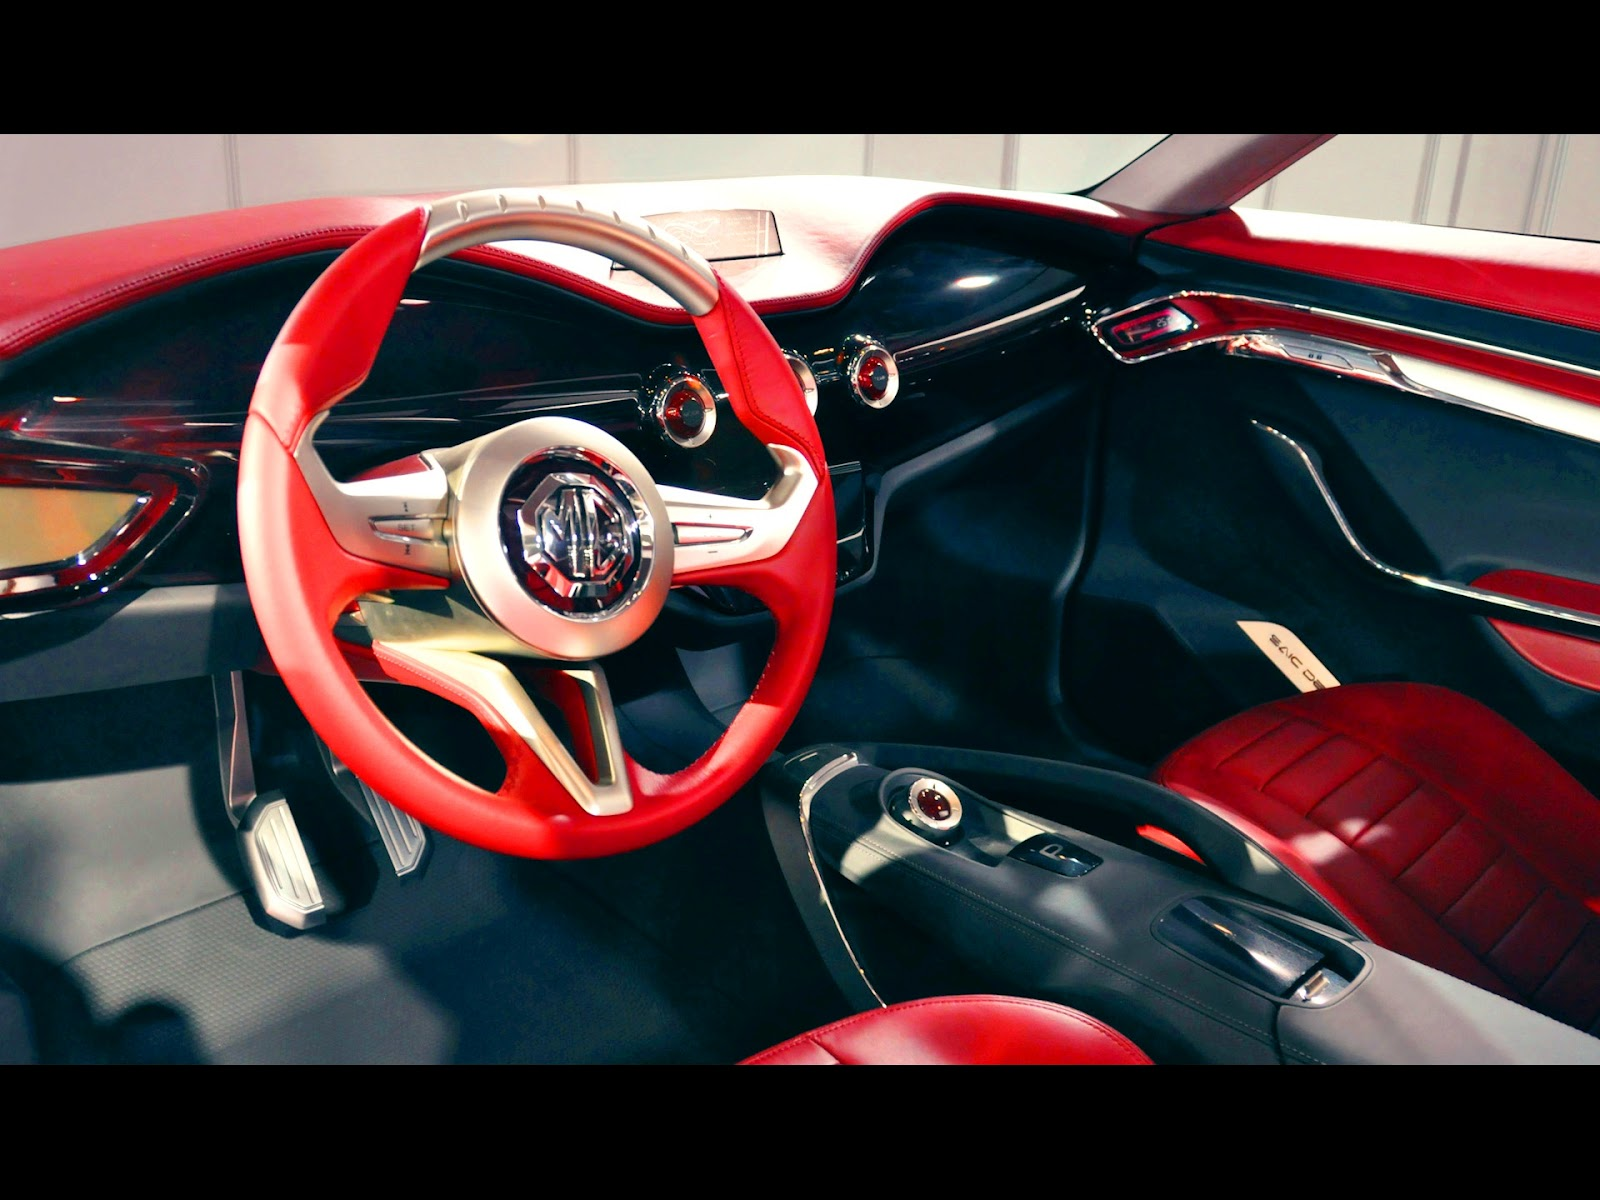 2012 mg icon concept beijing auto show news hot car. Black Bedroom Furniture Sets. Home Design Ideas